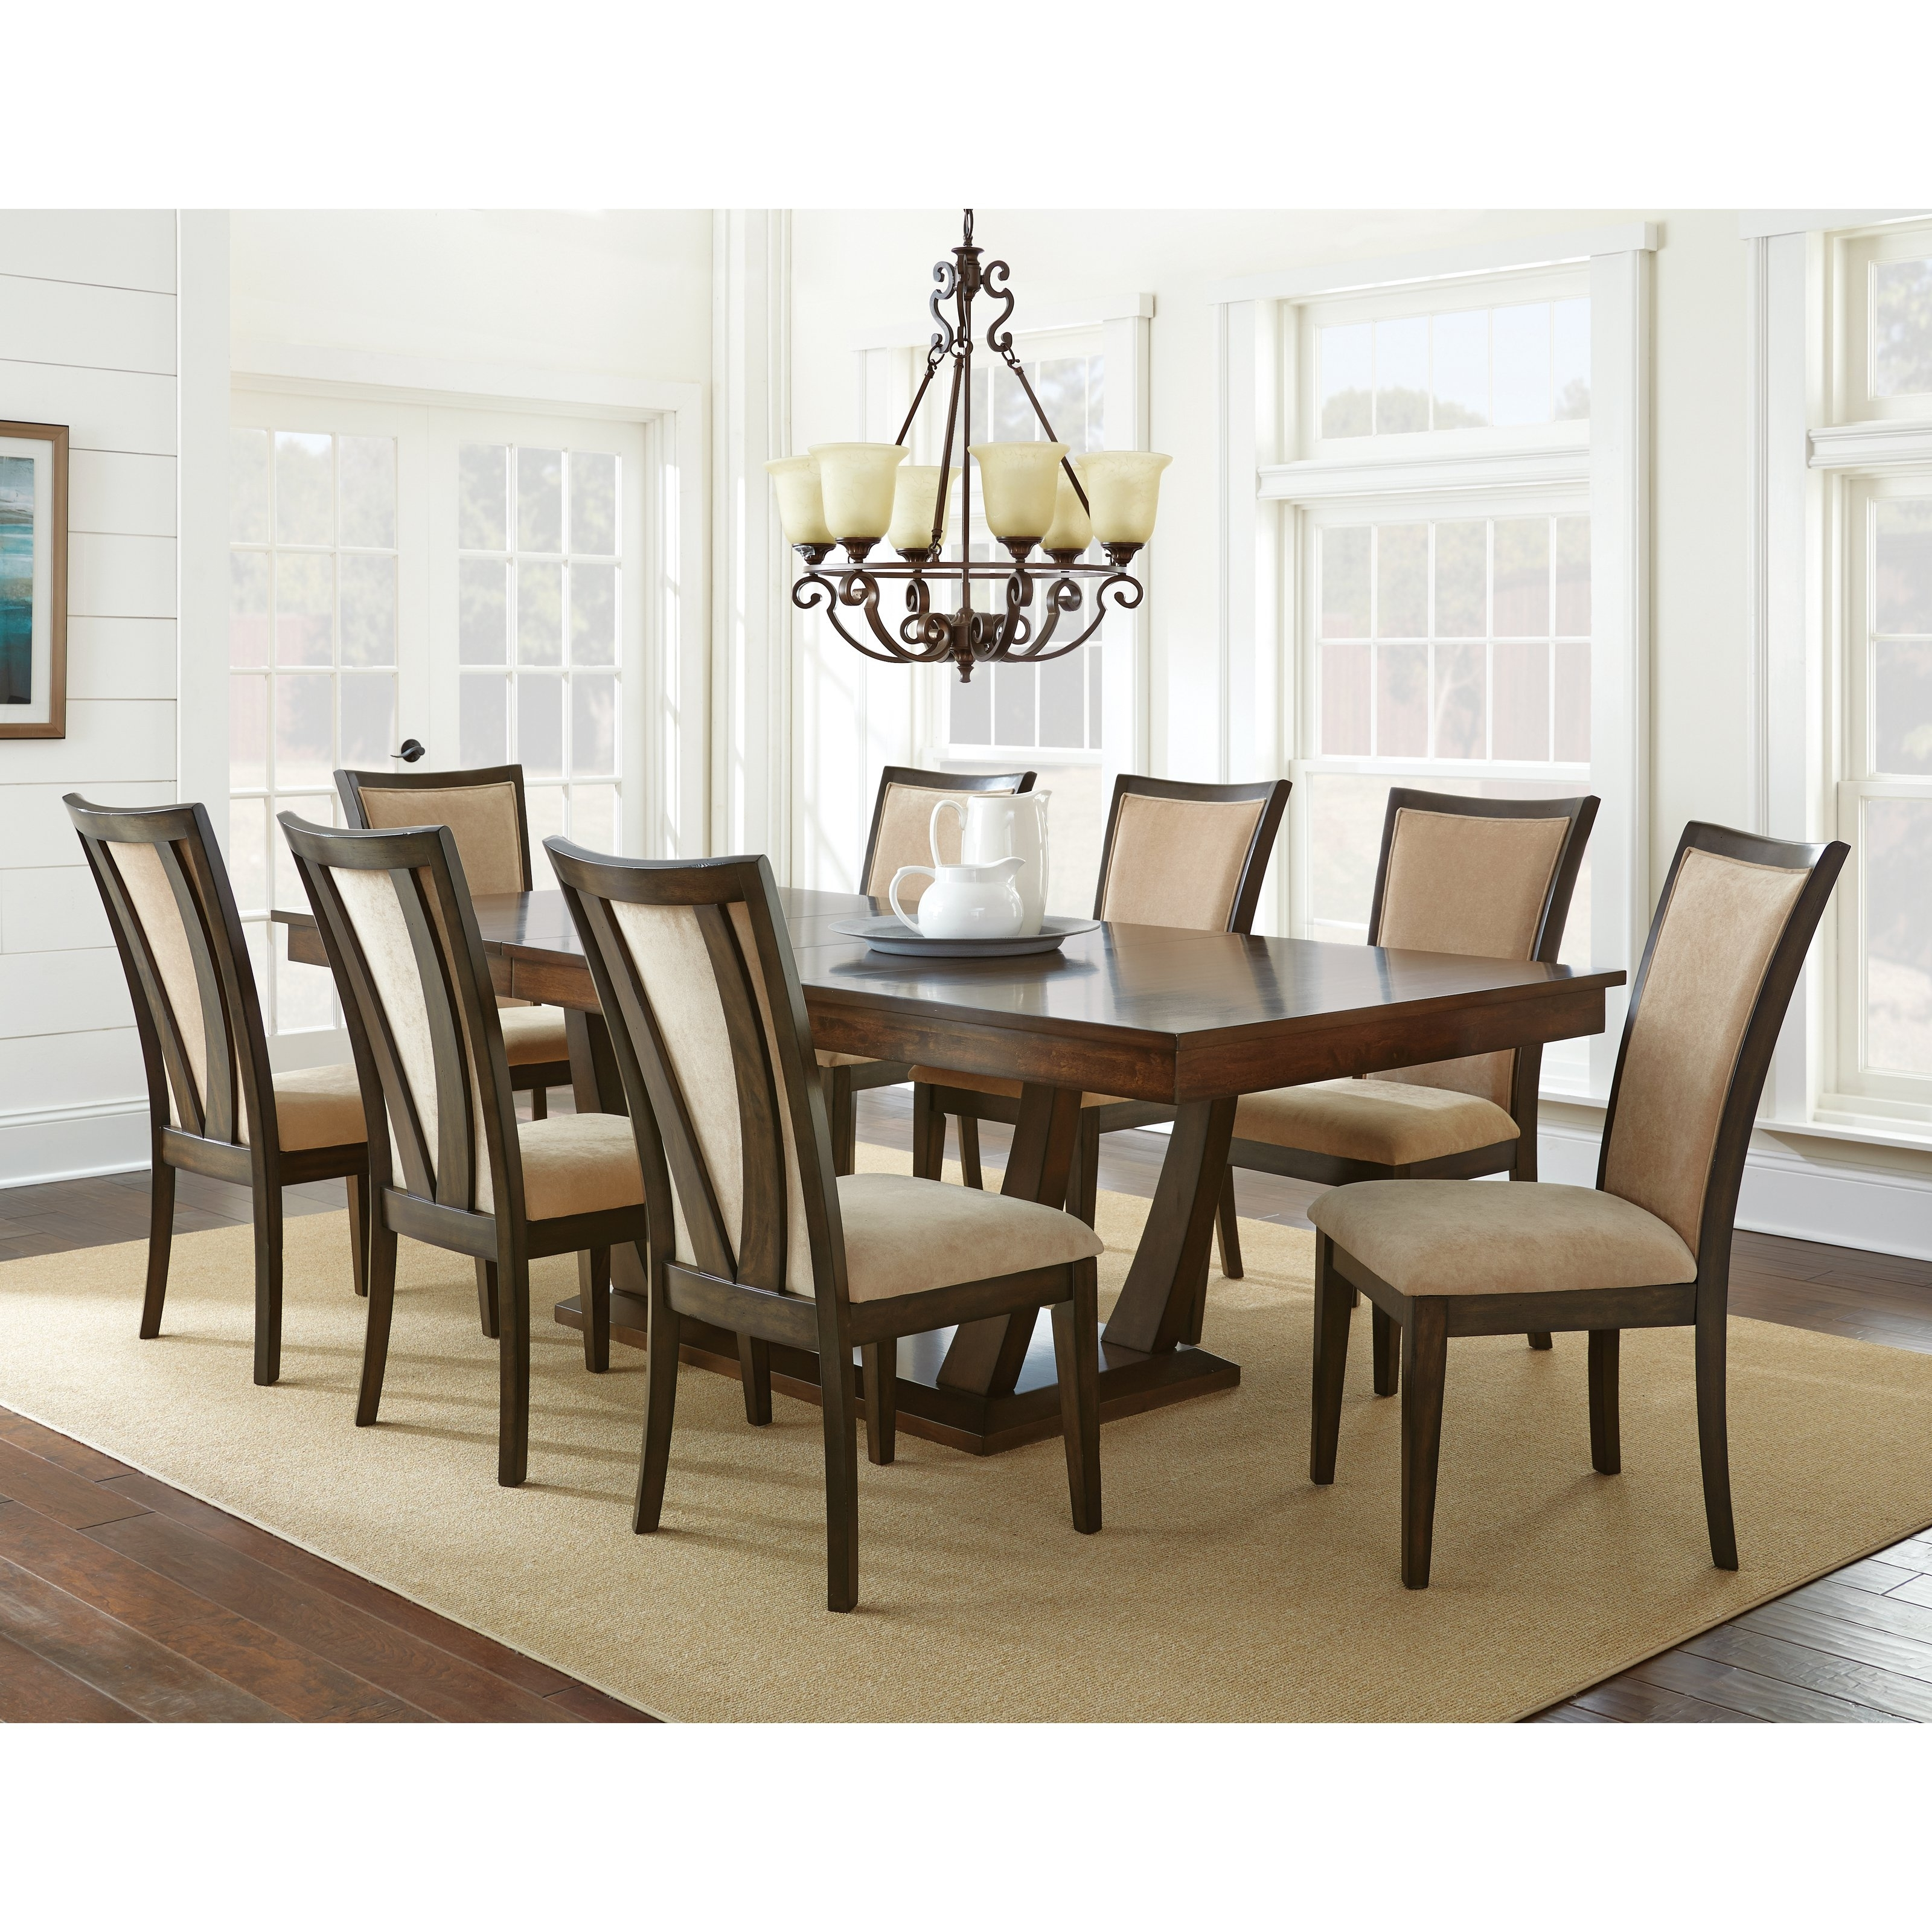 Steve Silver Gabrielle 9 Piece Dining Table Set – Medium Walnut Within Most Current Logan 7 Piece Dining Sets (View 13 of 25)